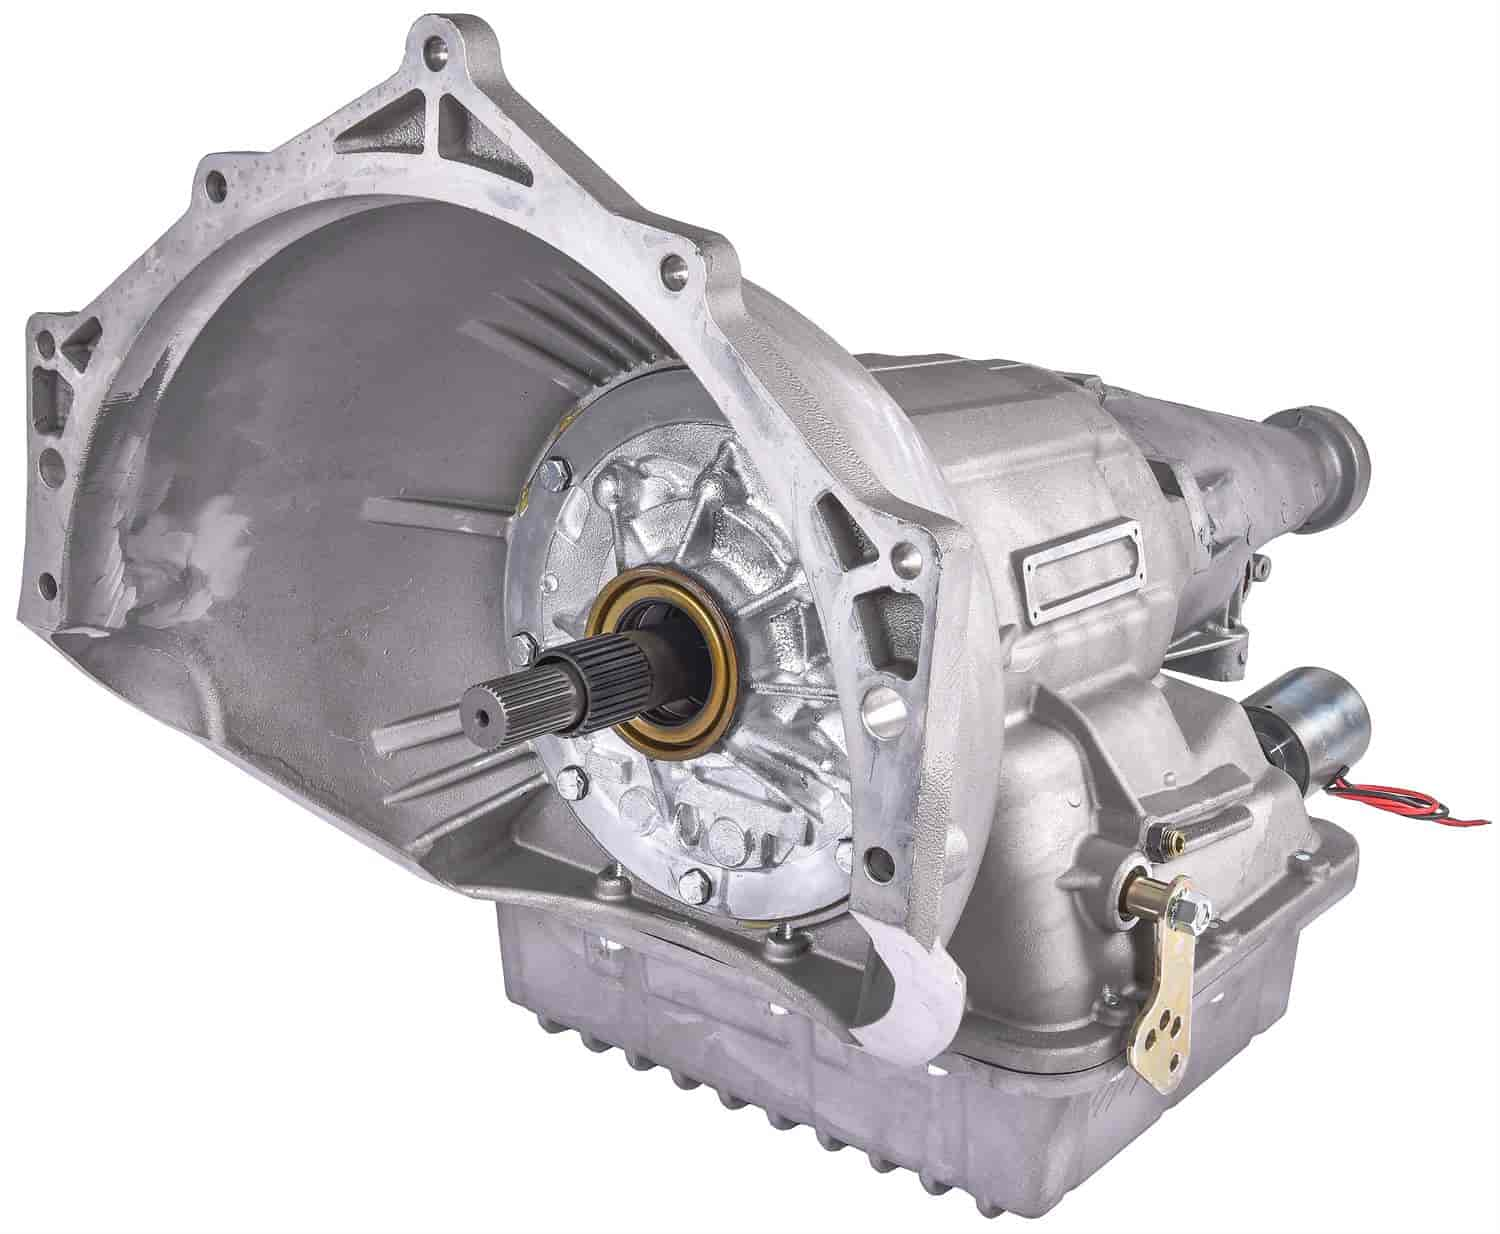 JEGS Powerglide Transmission with SFI Case [1200 HP]